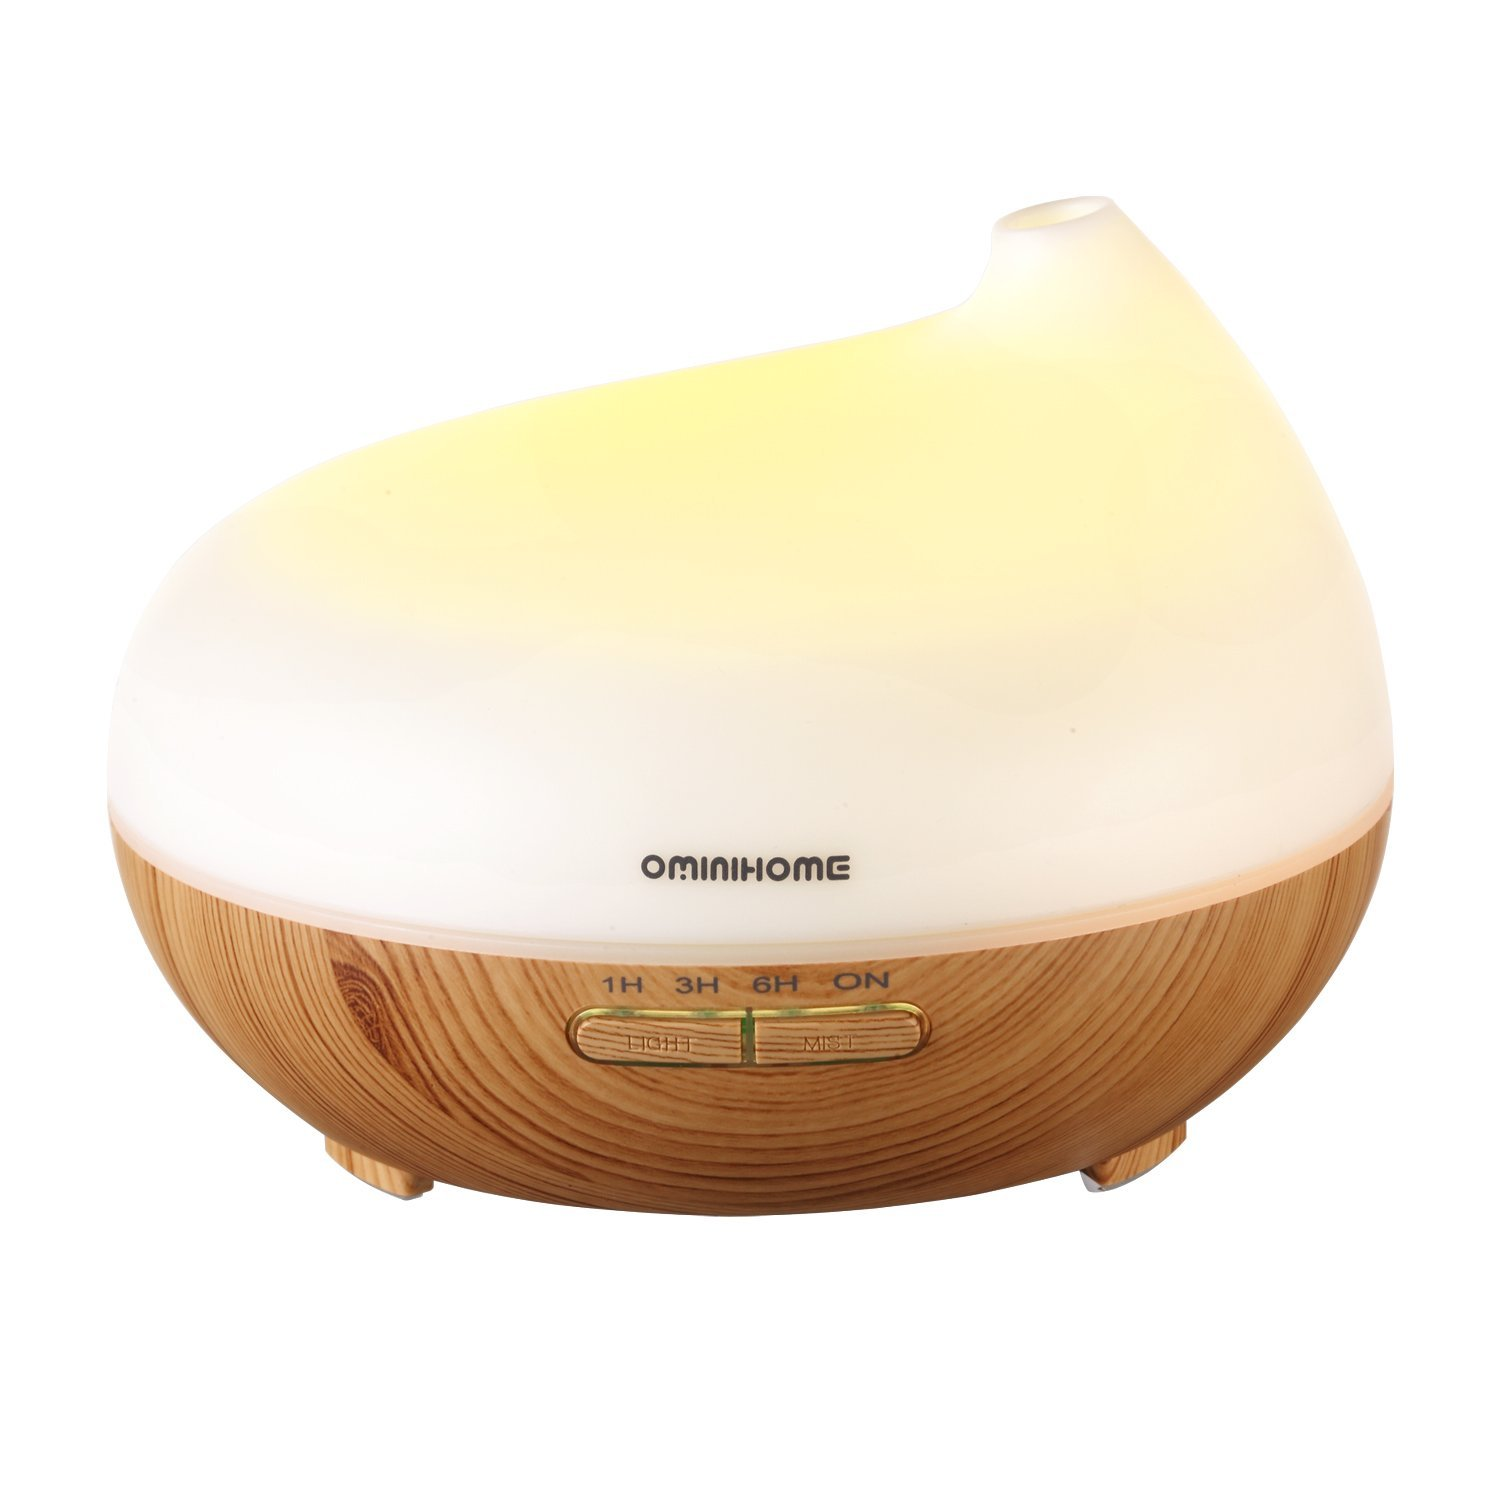 Aroma Essential Oil Diffuser with Timer Setting, 7-Color Scented Diffuser Humidifier with Mist Modes, 300ml Unique Night Light Humidifier for Kids, Office, Home Decor (Wood Grain)